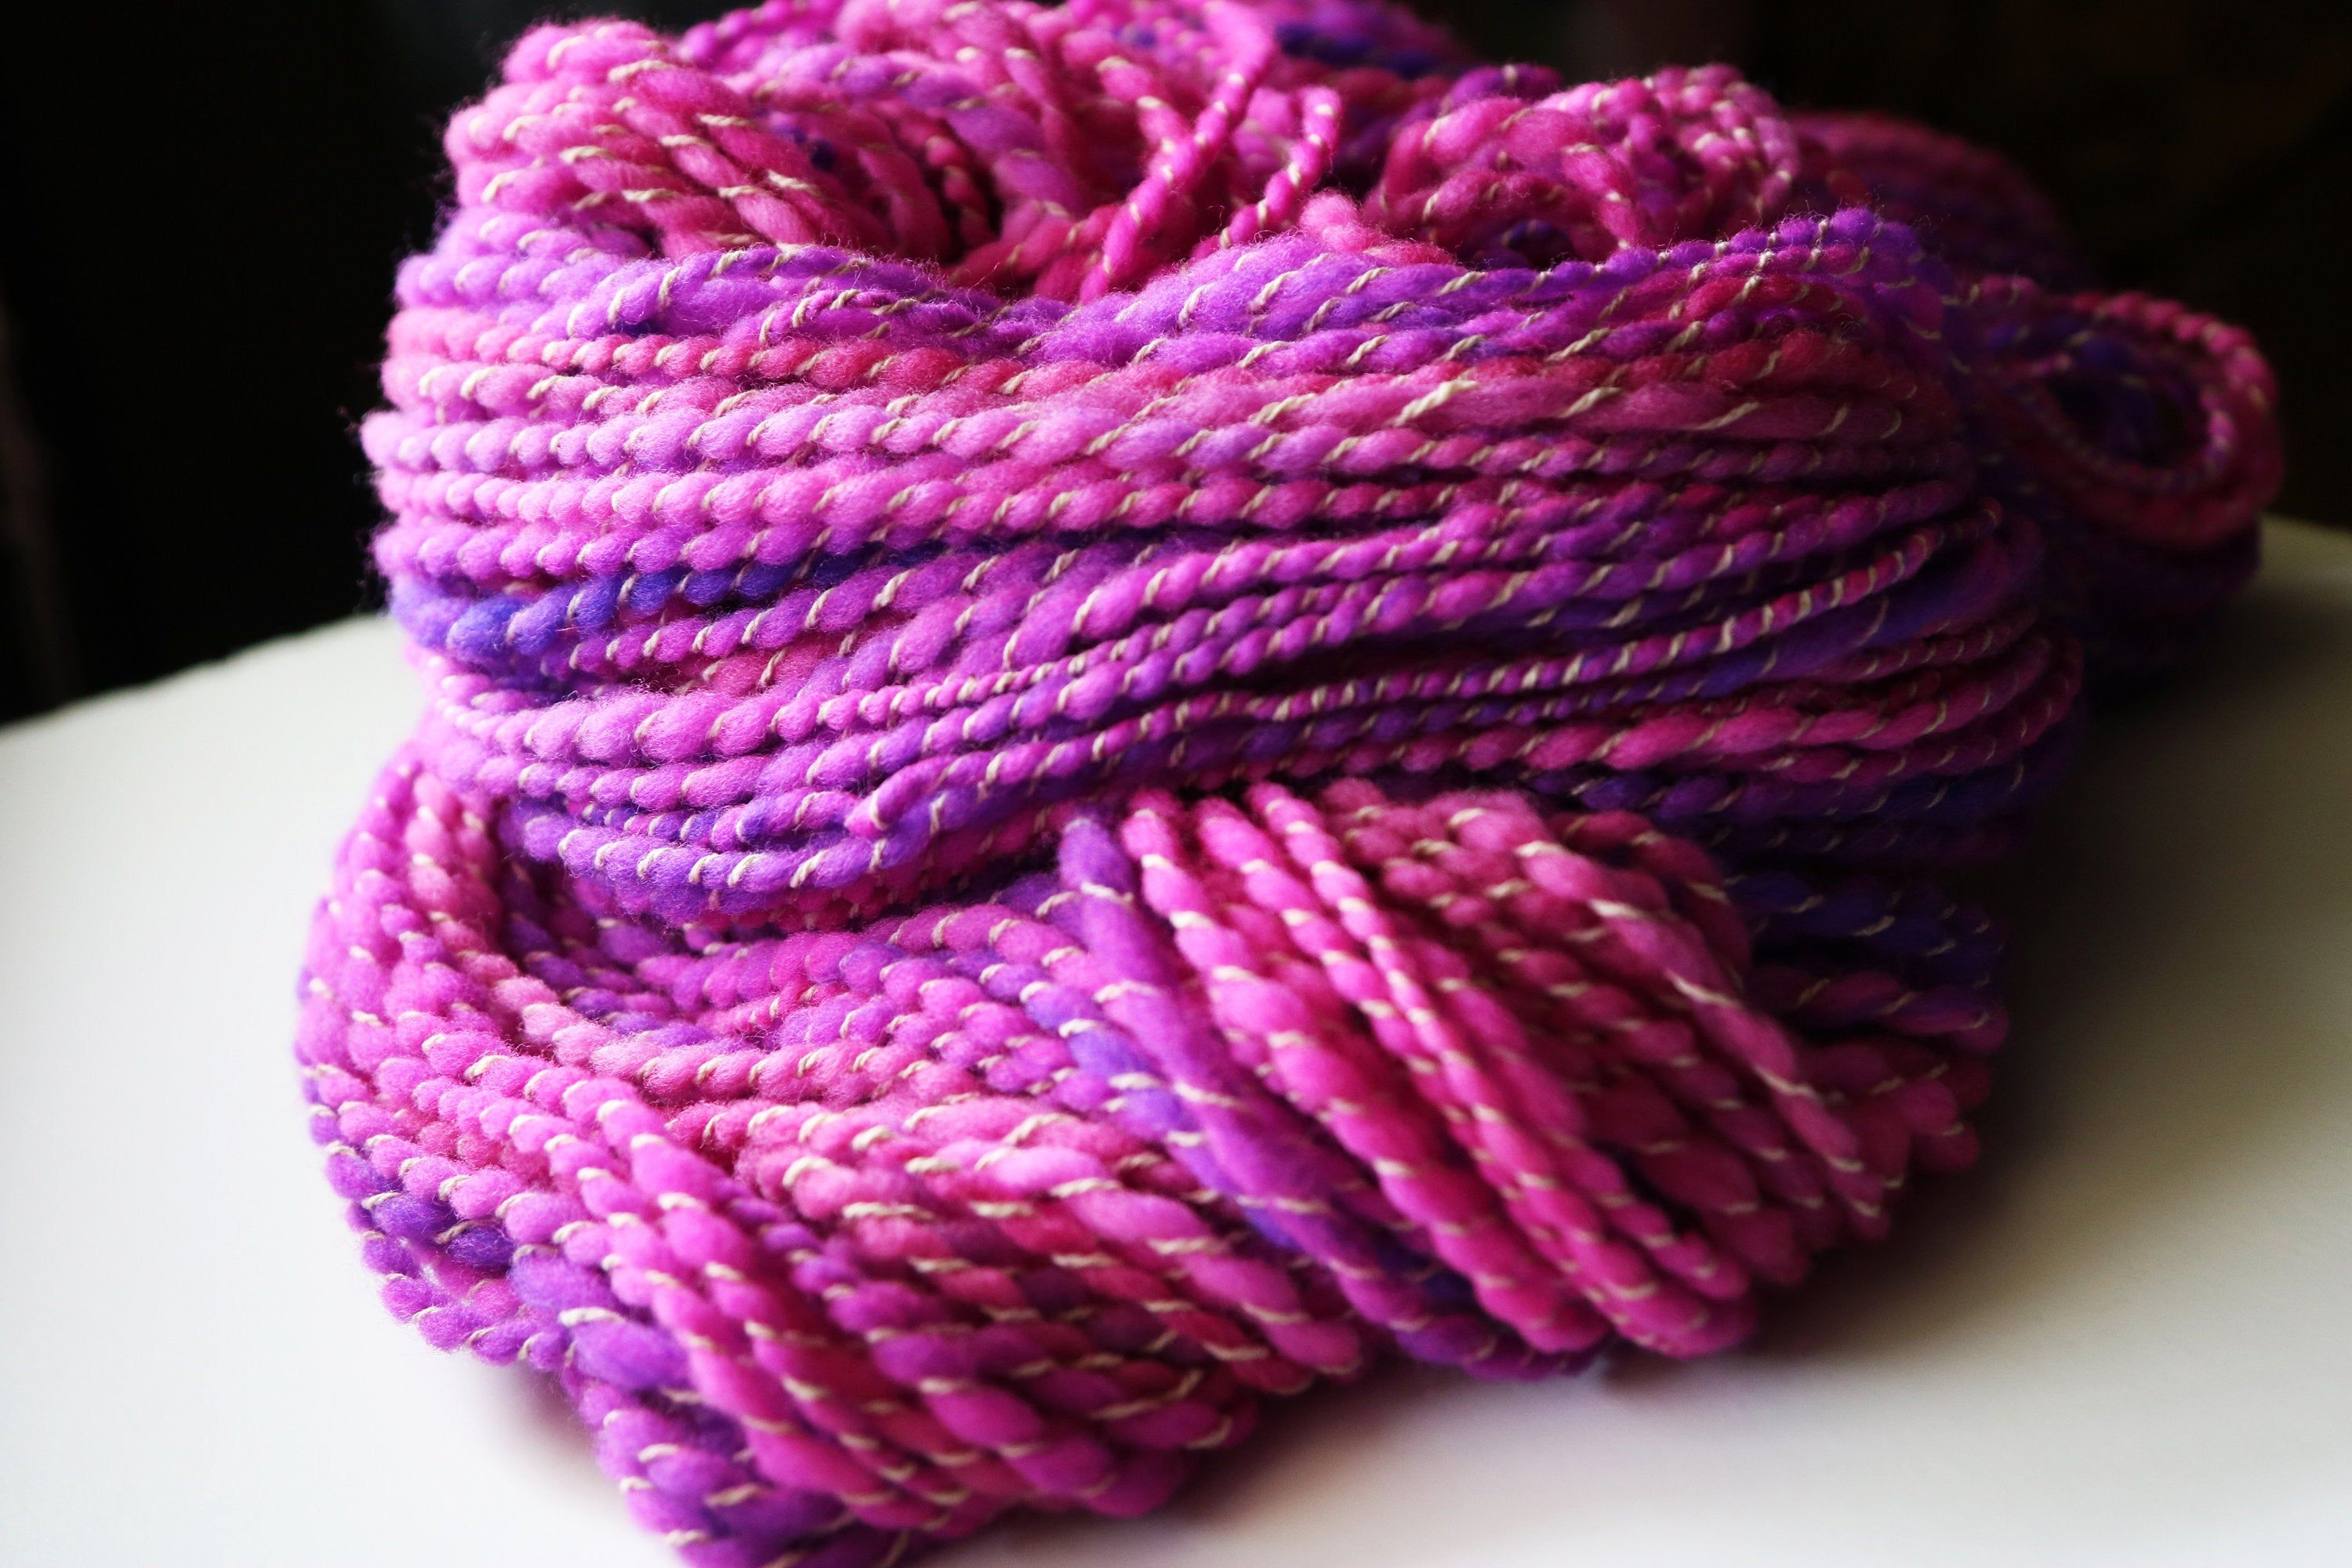 80 Yds Pink and Purple Handspun Yarn Plied with White #crochet #SoftYarn #JewelTone #QualityYarn #HandspunYarn #HandmadeYarn #colorful #ArtYarn #HandDyed #knitting